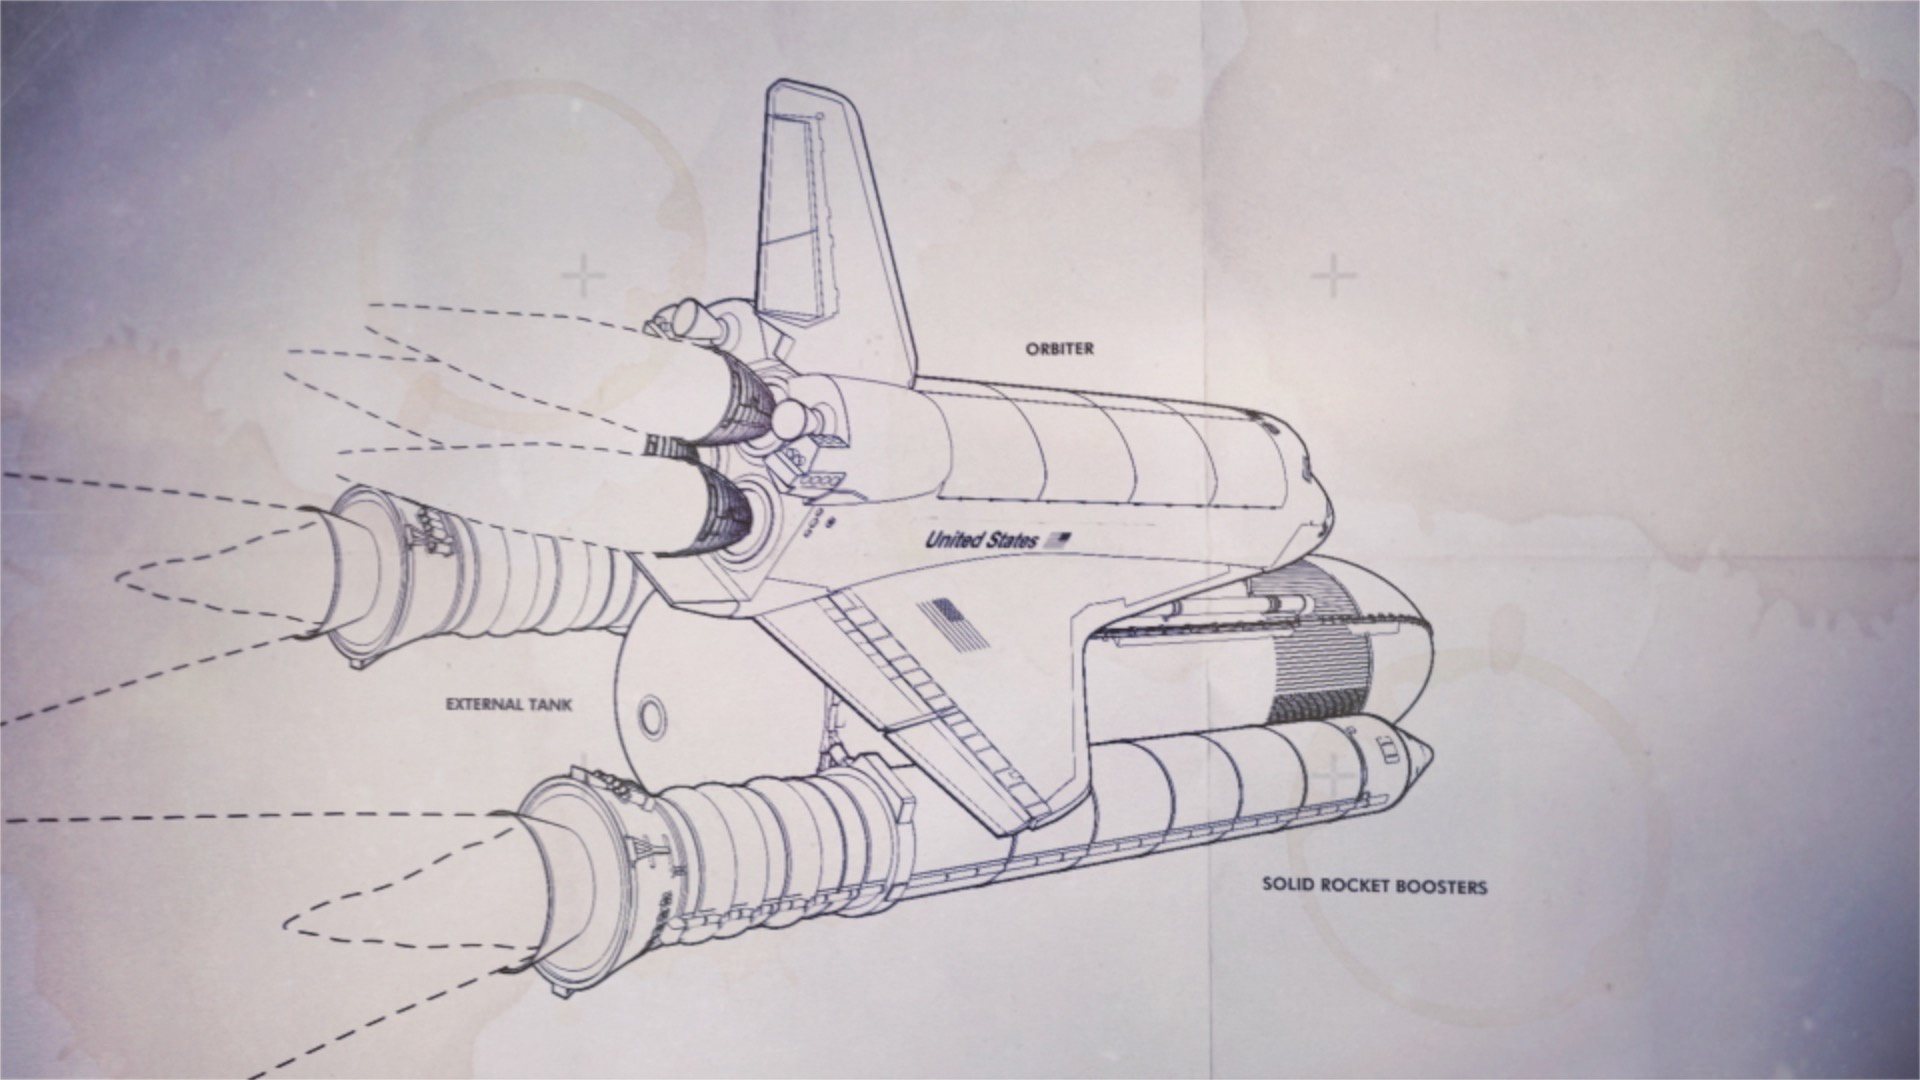 A line drawing illustration of the Space Shuttle